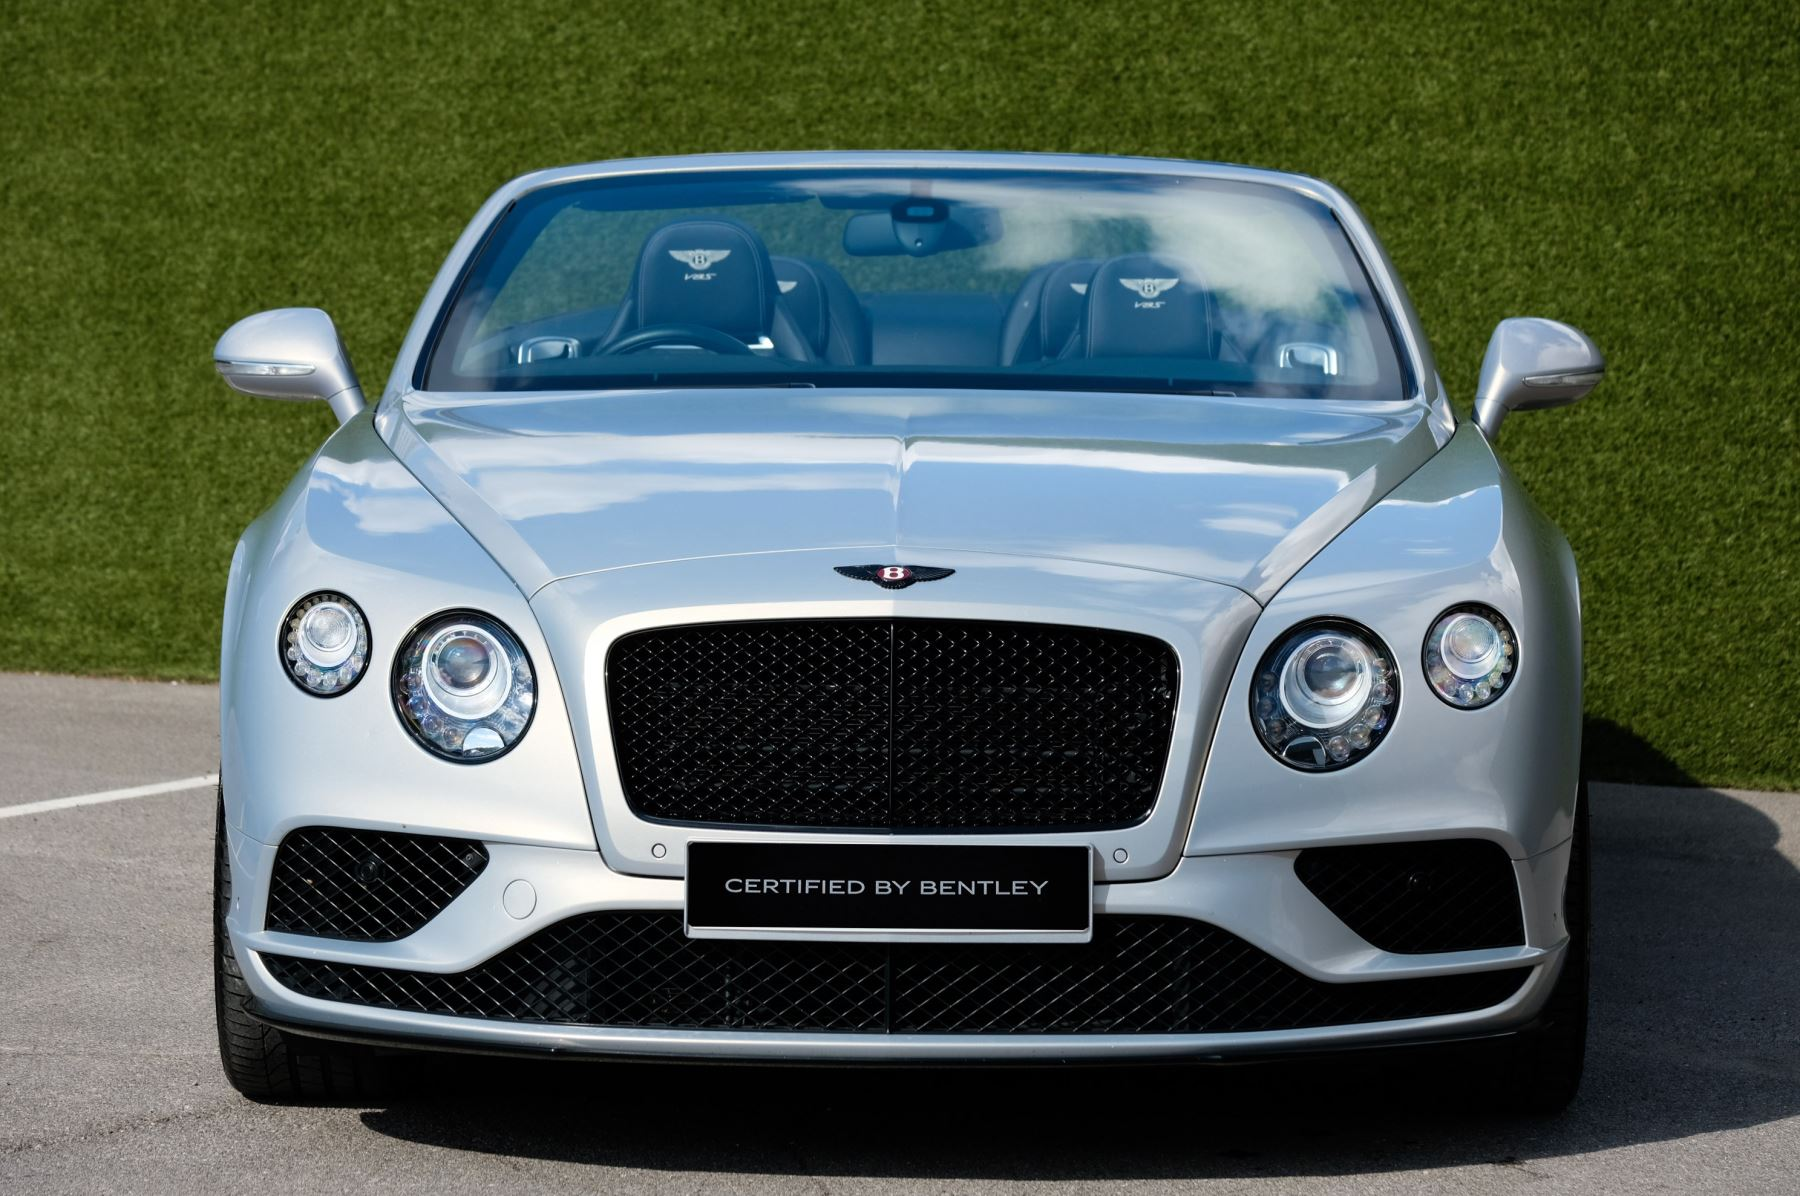 Bentley Continental GTC 4.0 V8 S Mulliner Driving Spec - Ventilated Front Seats with Massage Function image 2